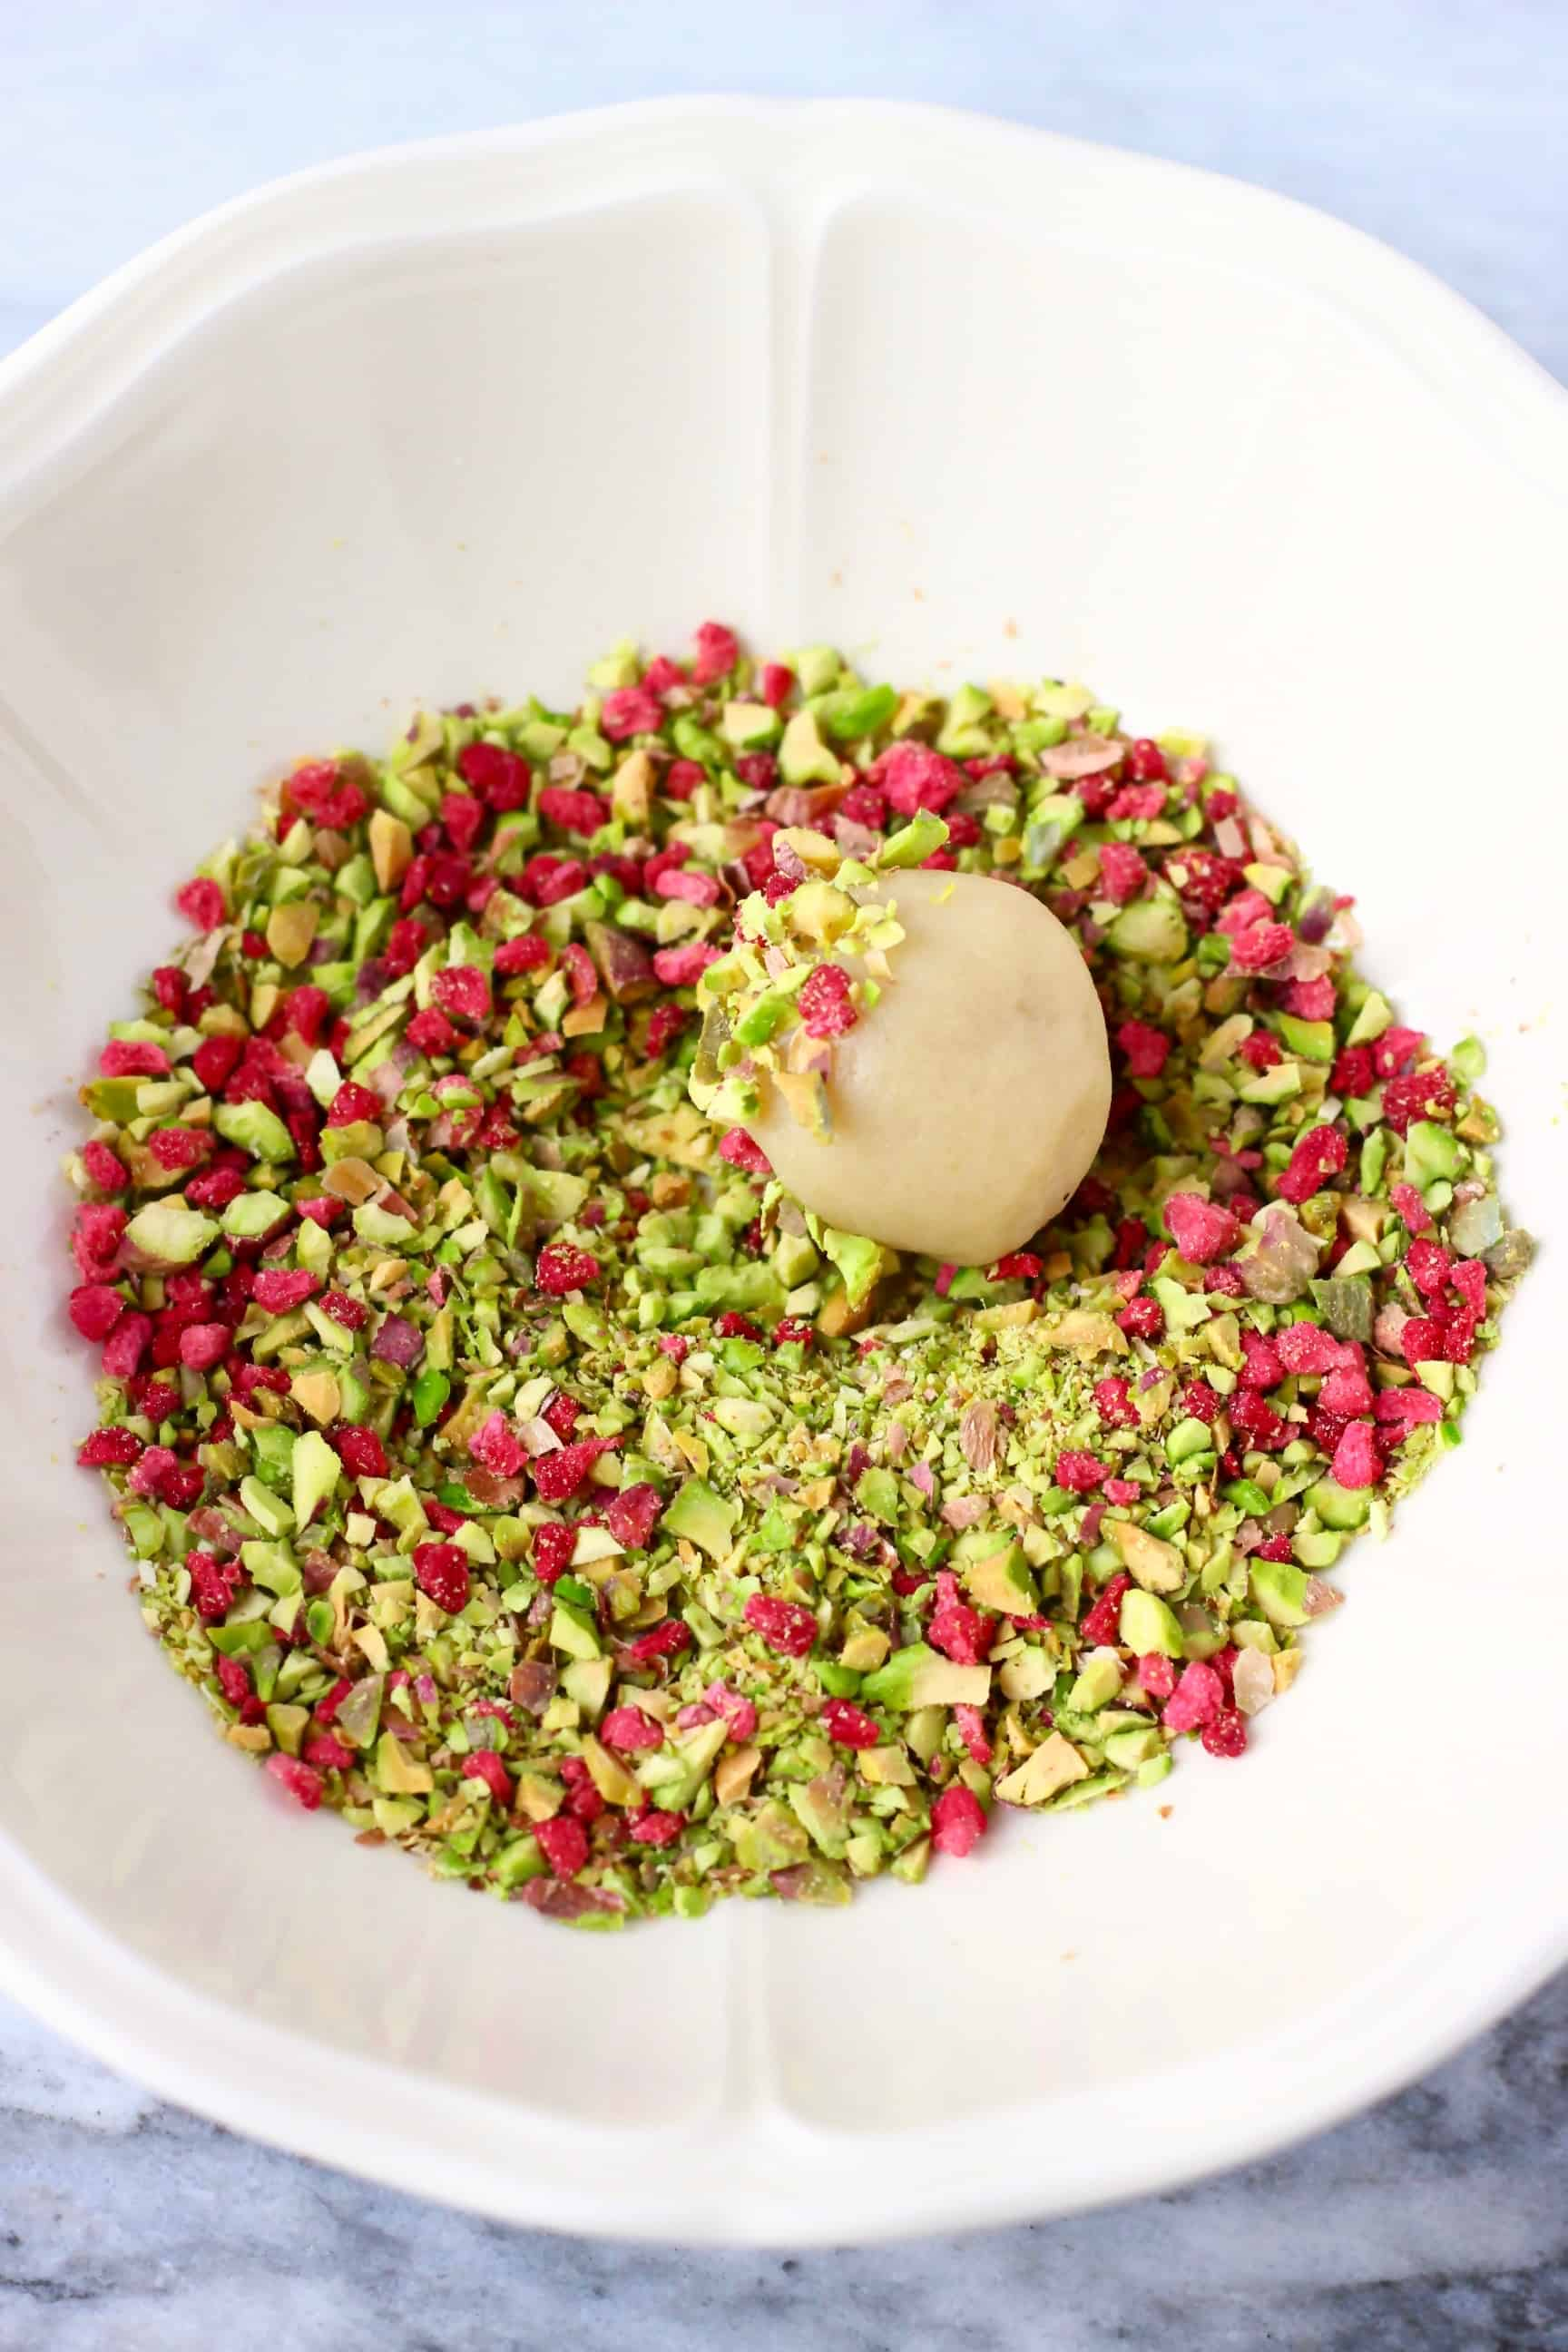 A vegan white chocolate truffle being rolled around in a bowl of chopped pistachios and freeze-dried raspberries